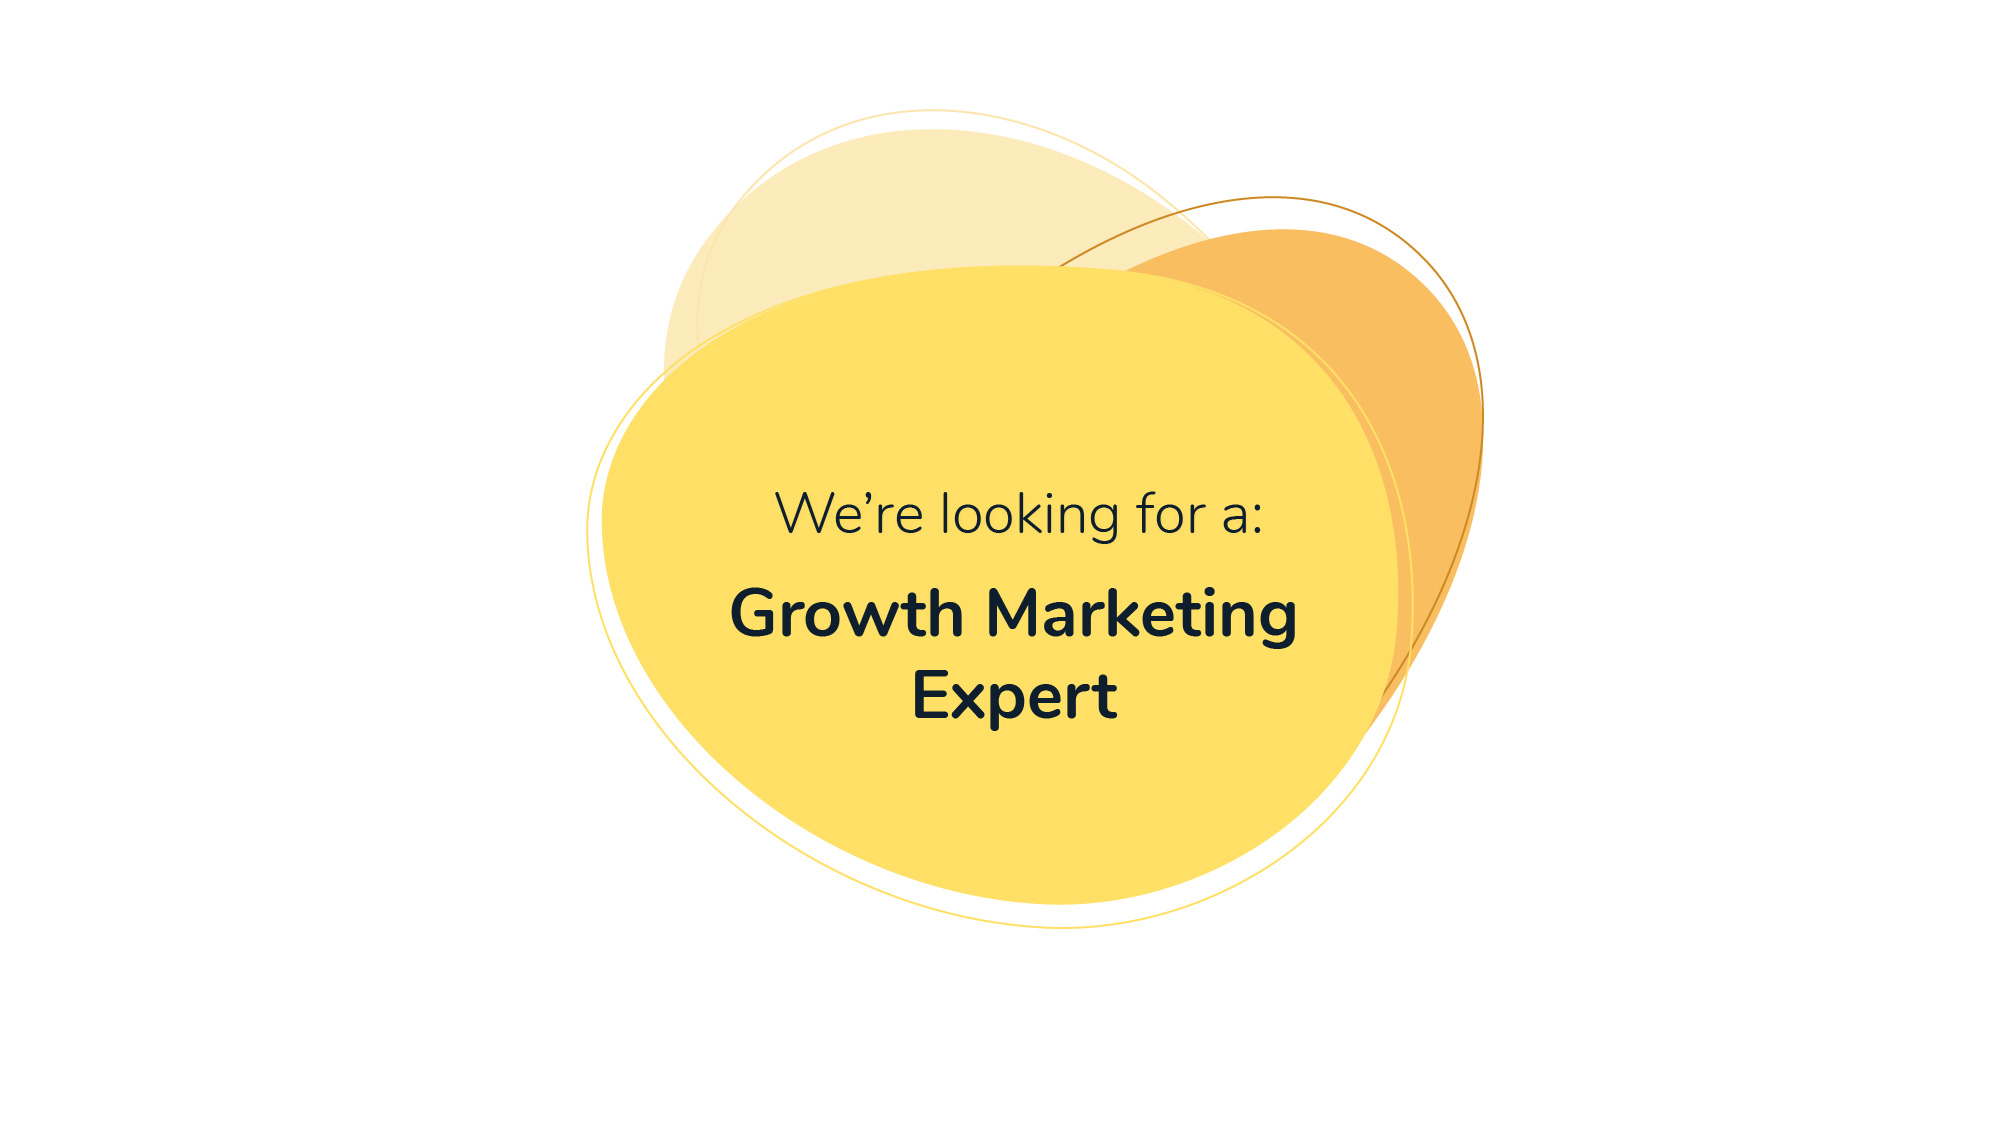 growth marketing expert